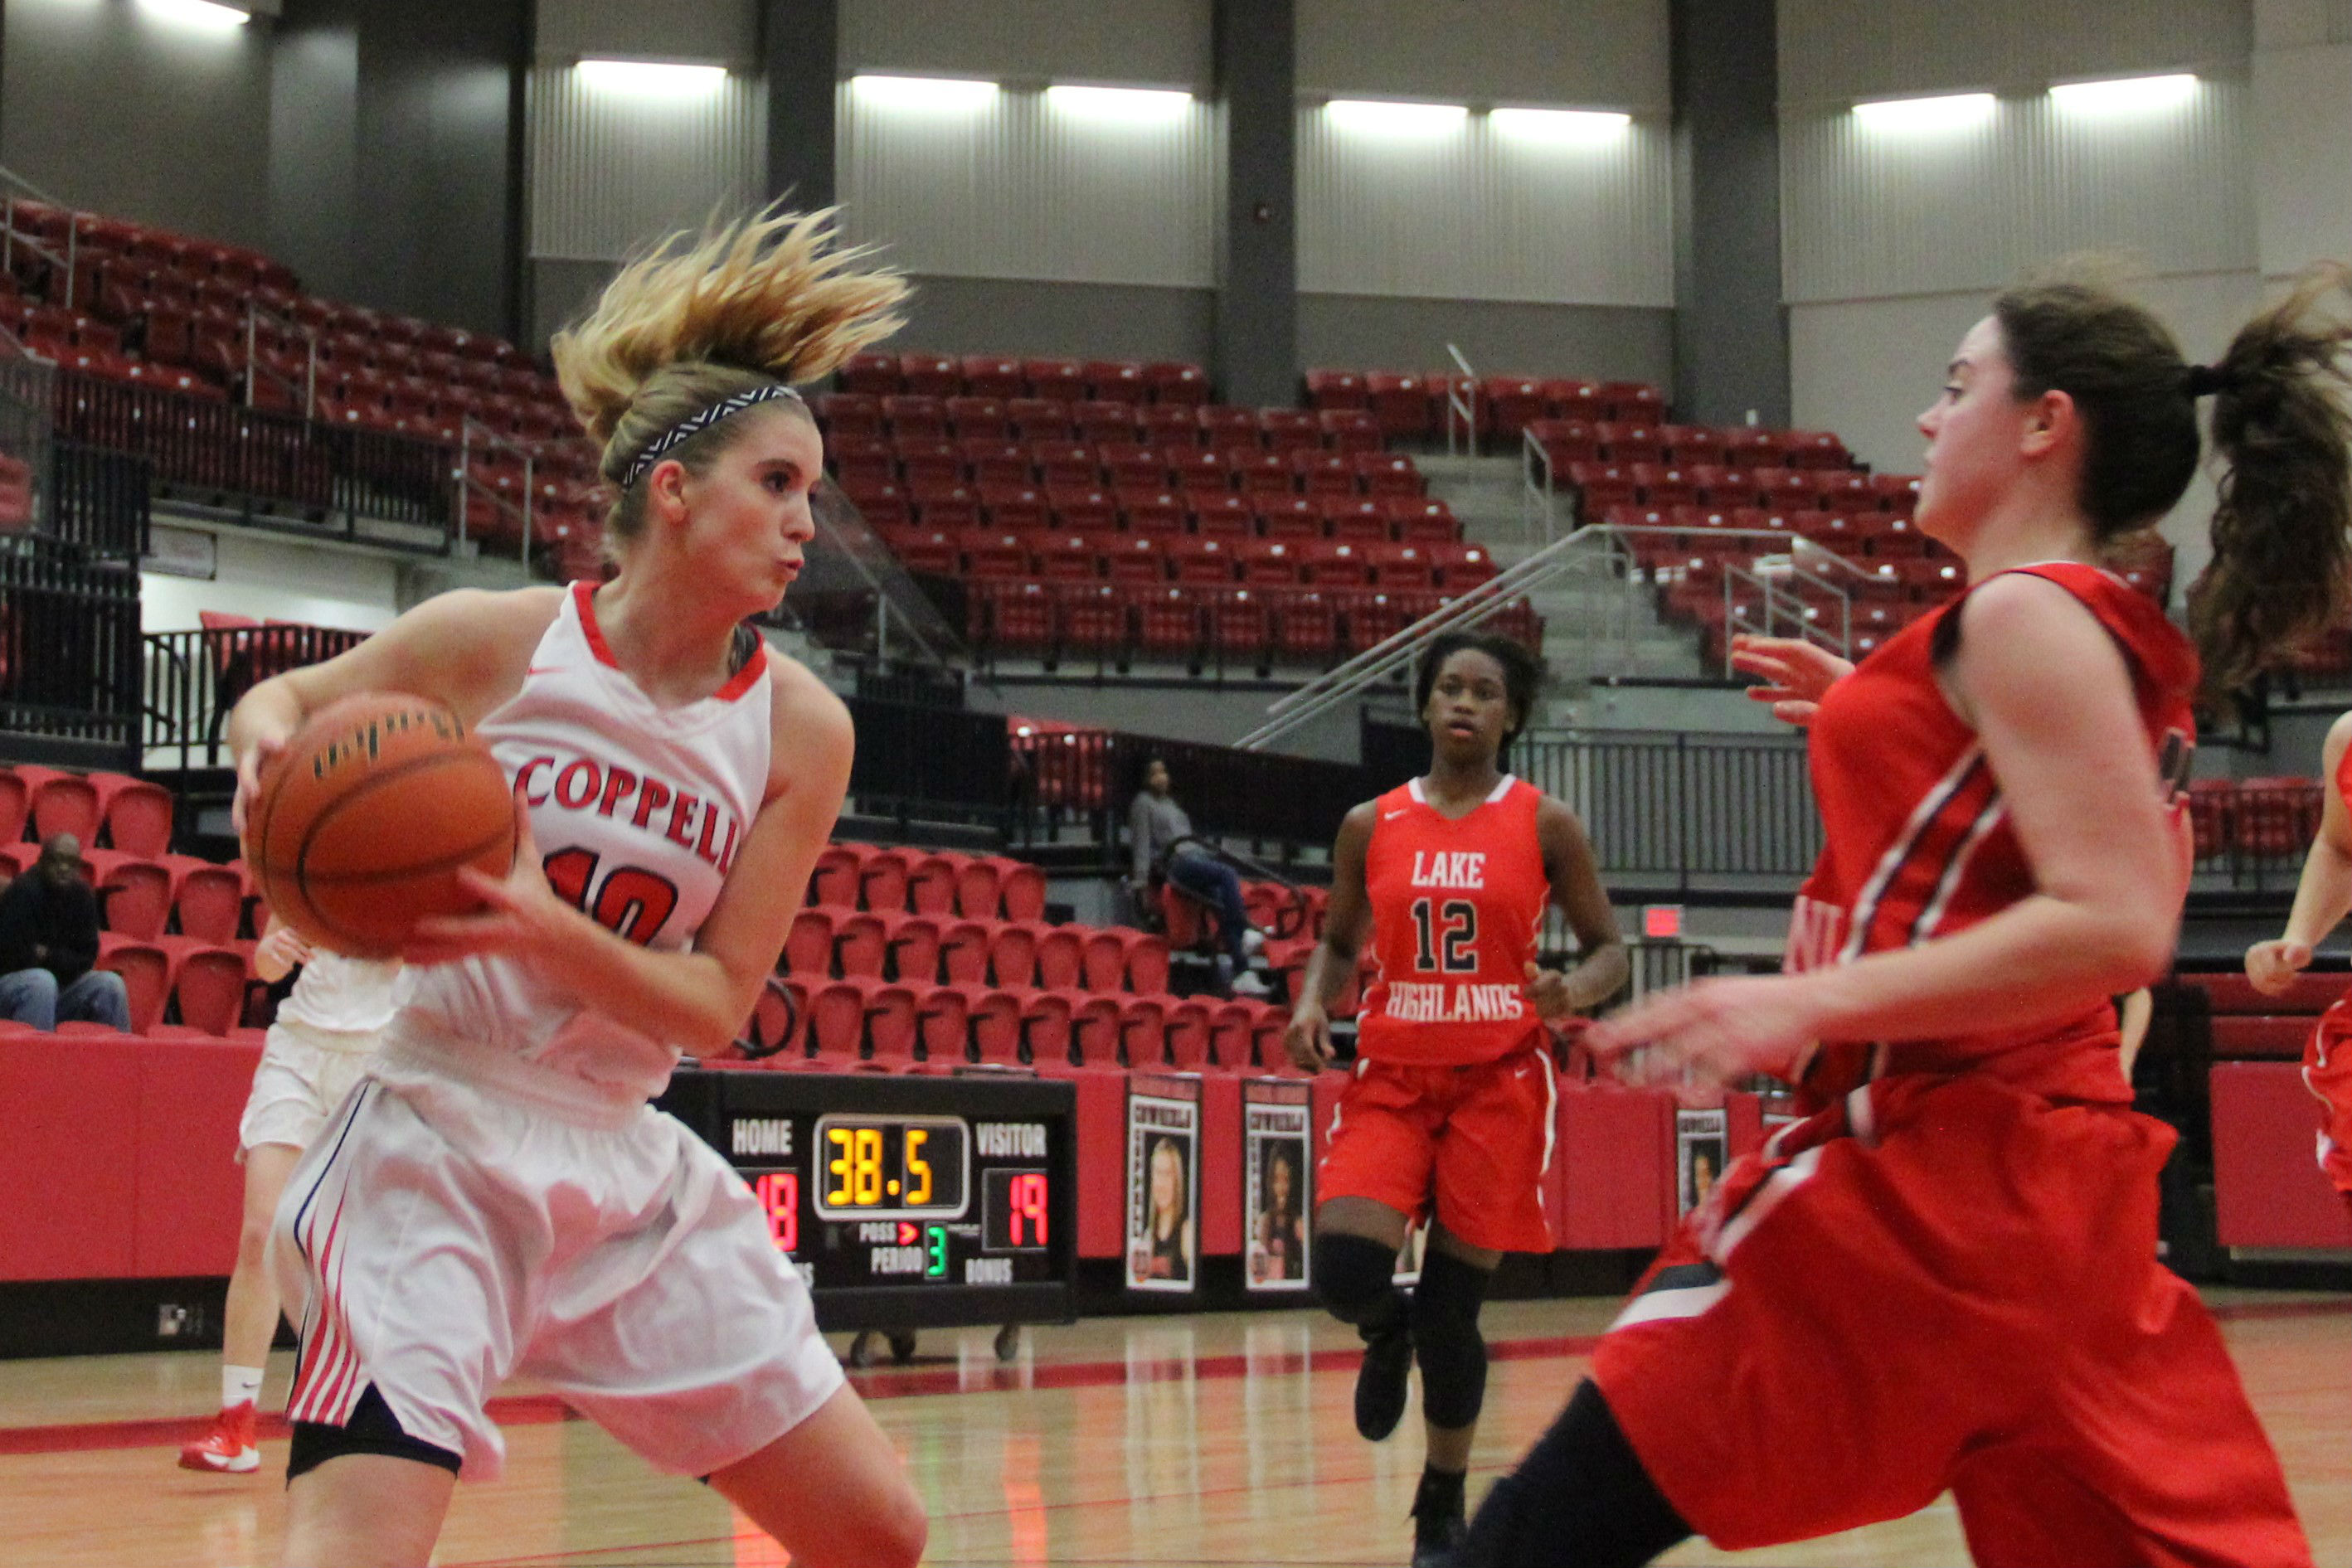 Junior guard Mary Luckett drives into the lane in Coppell's 60-30 victory over Lake Highlands on Friday night. The Cowgirls got off on a tear to start the game, leading 14-0 midway through the first quarter.